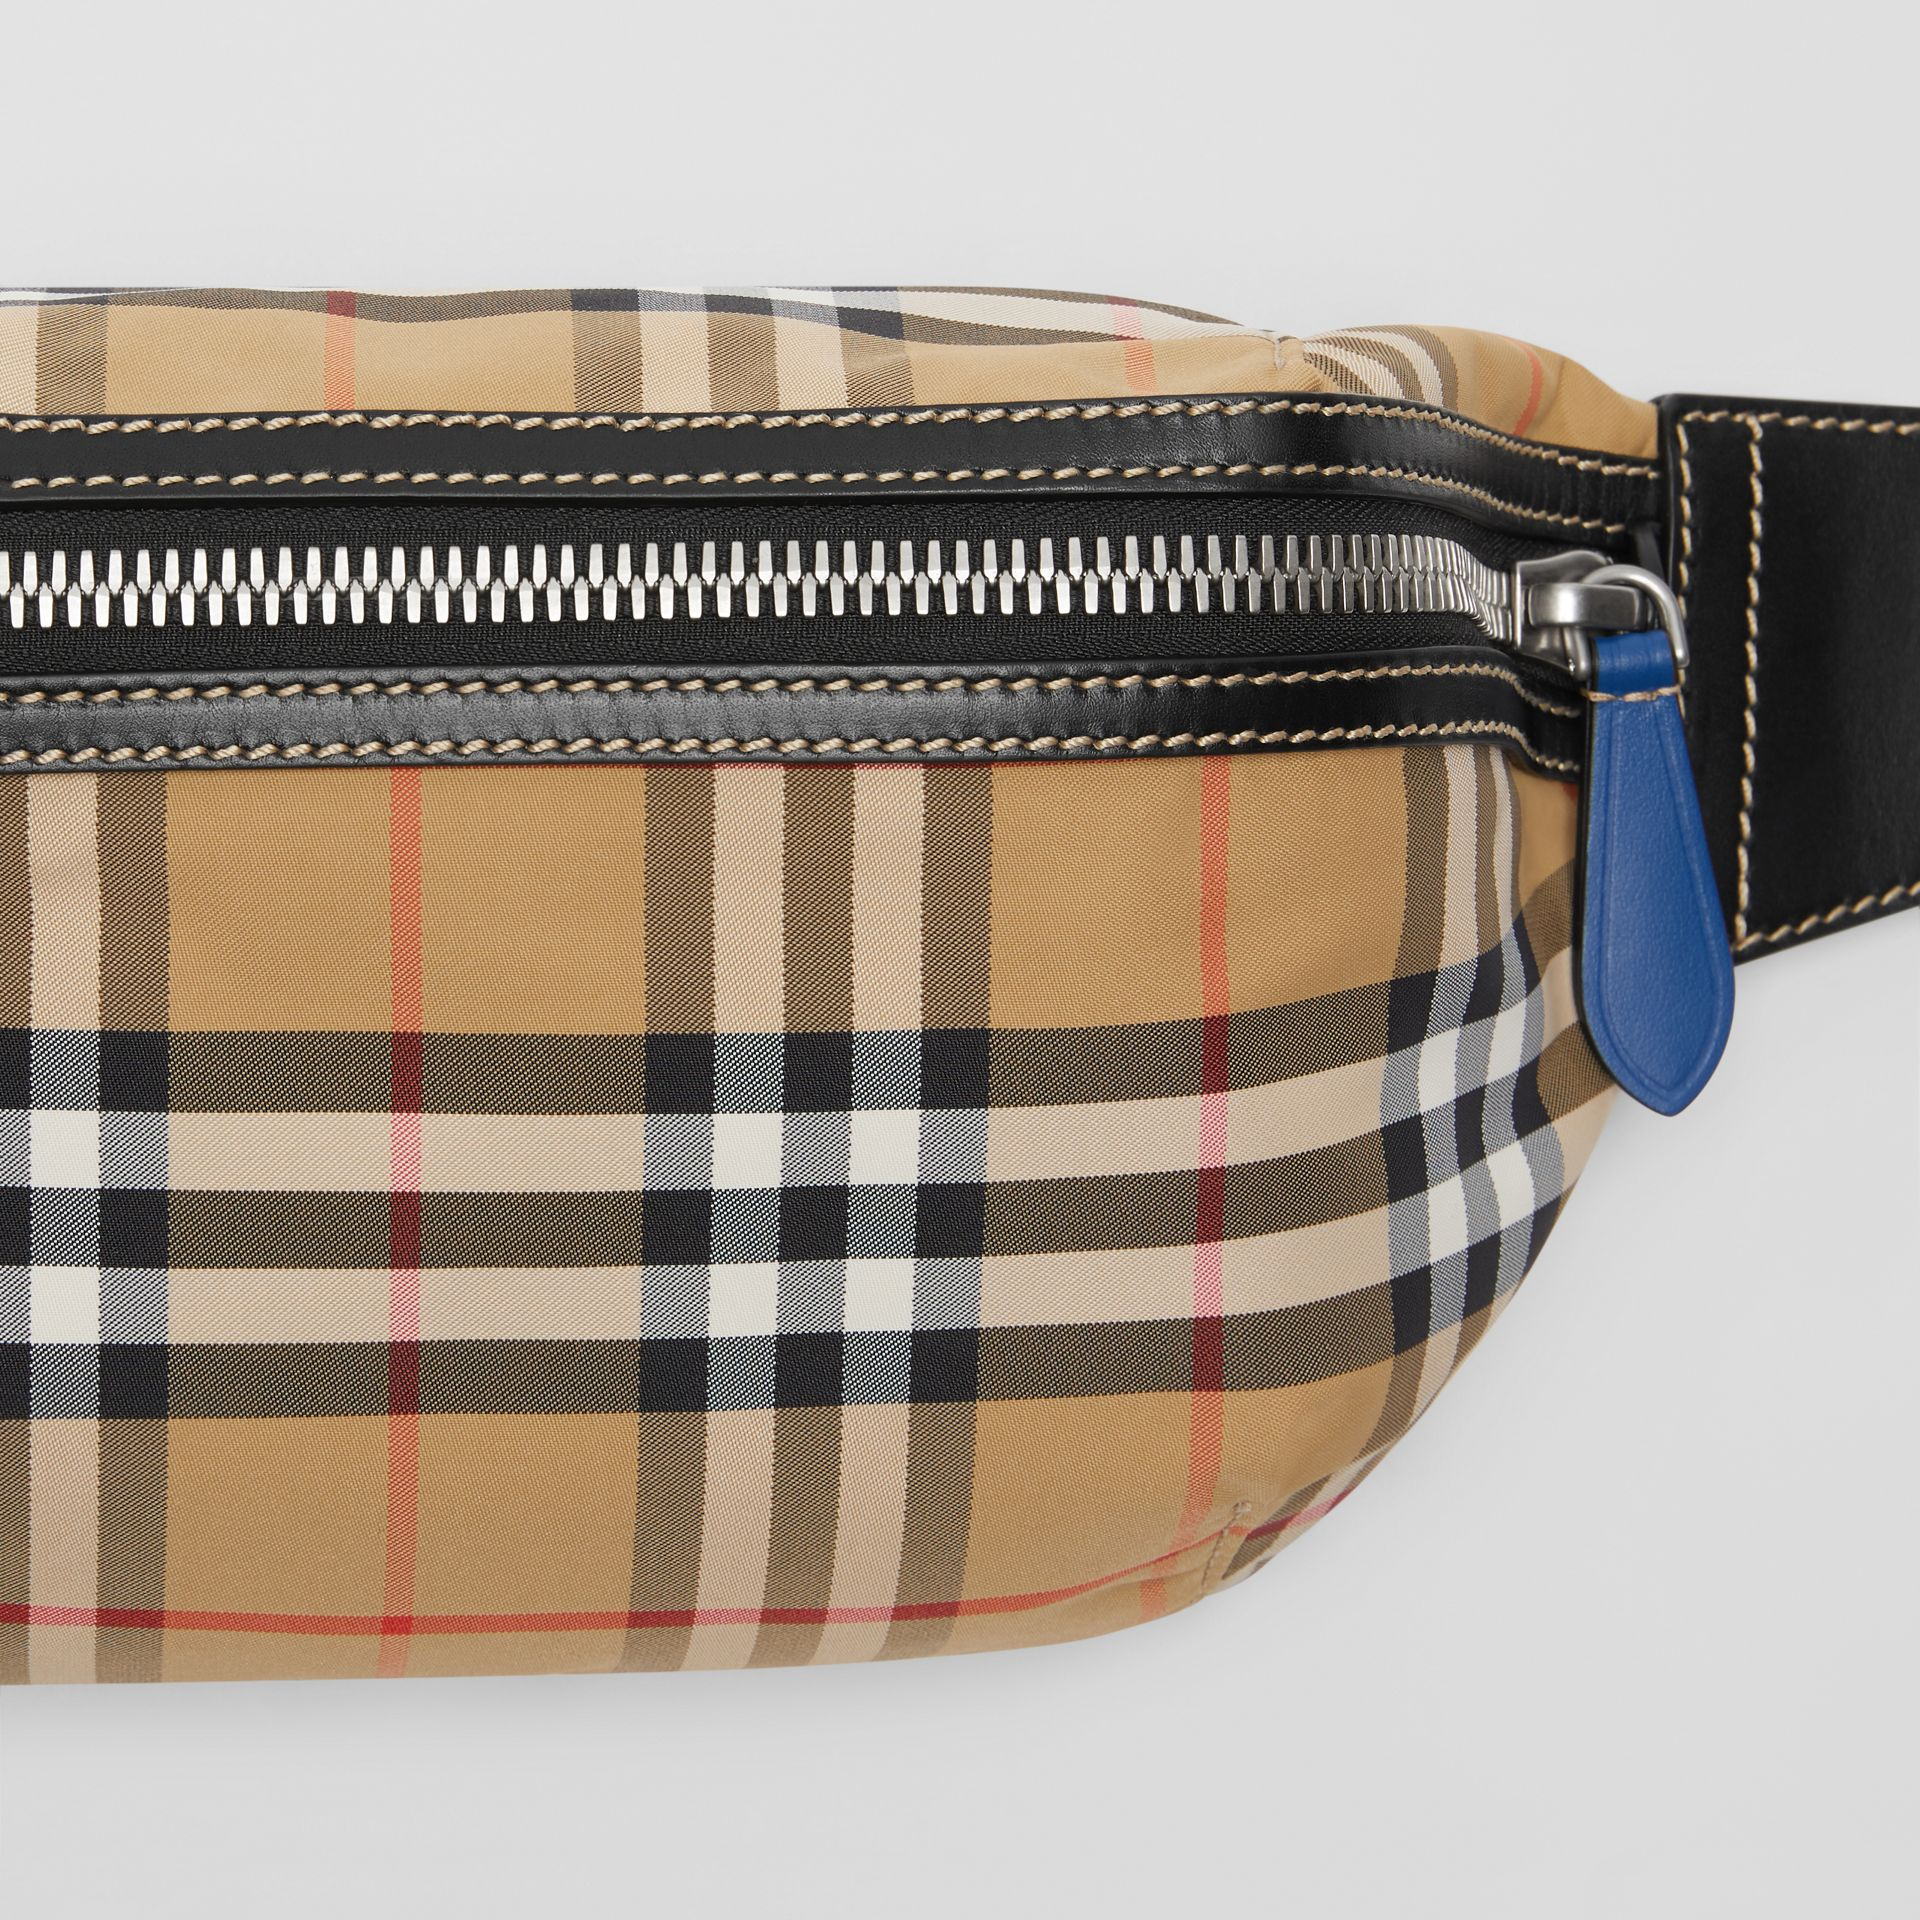 Medium Vintage Check Bum Bag in Antique Yellow | Burberry - gallery image 1